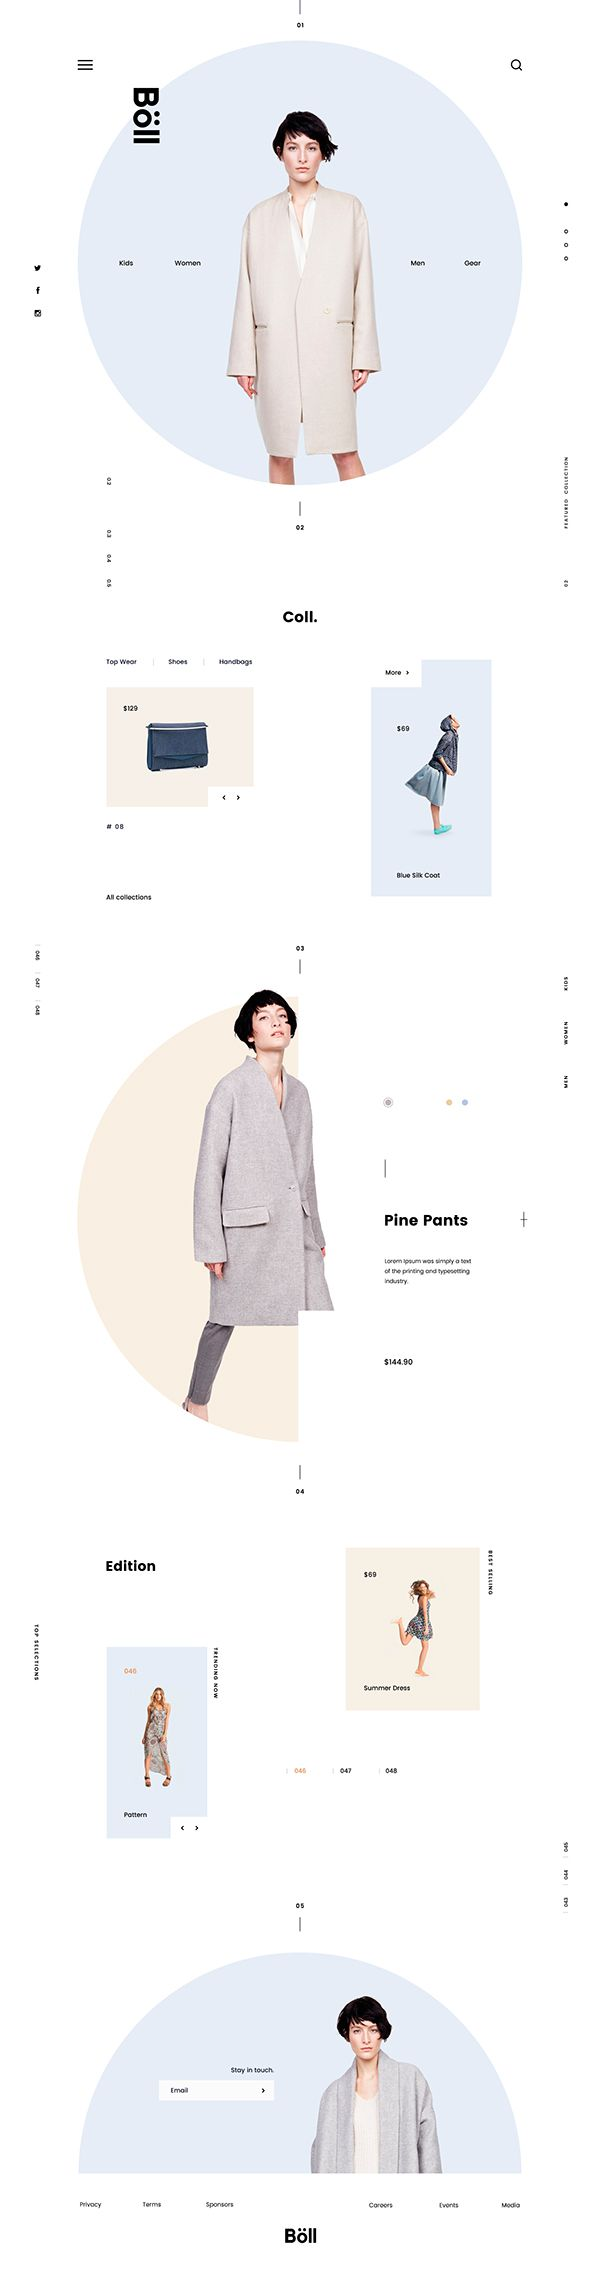 Website Design For Fashion E Commerce Design Style Inspired From Scandinavian Japanese Fusi Fashion Layout Website Design Inspiration Web Design Inspiration